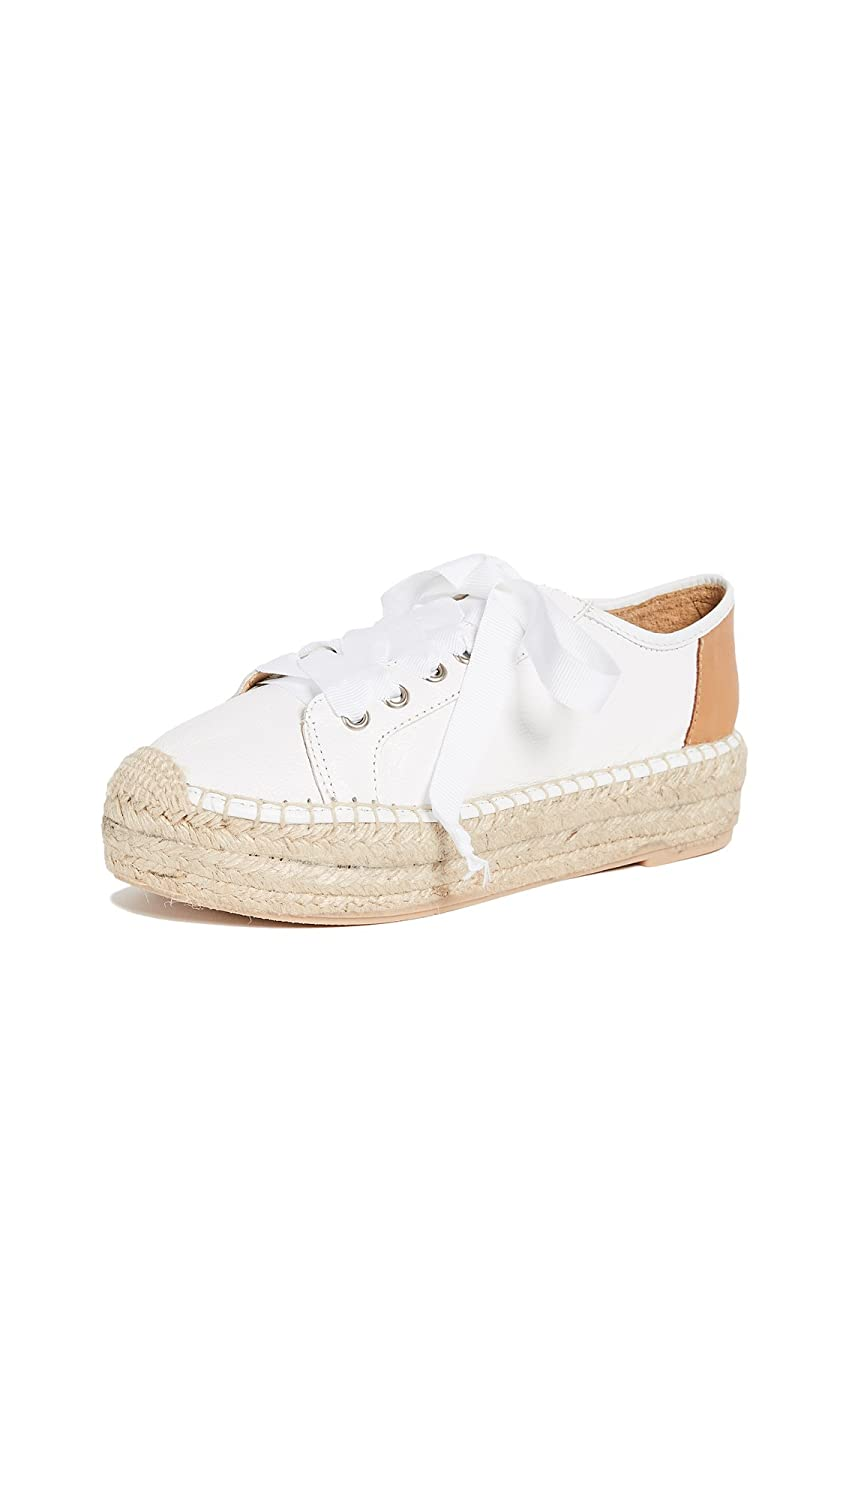 Amazon.com | Matt Bernson Womenu0027s Eze Leather Espadrille Sneakers | Fashion Sneakers  sc 1 st  Amazon.com & Amazon.com | Matt Bernson Womenu0027s Eze Leather Espadrille Sneakers ...